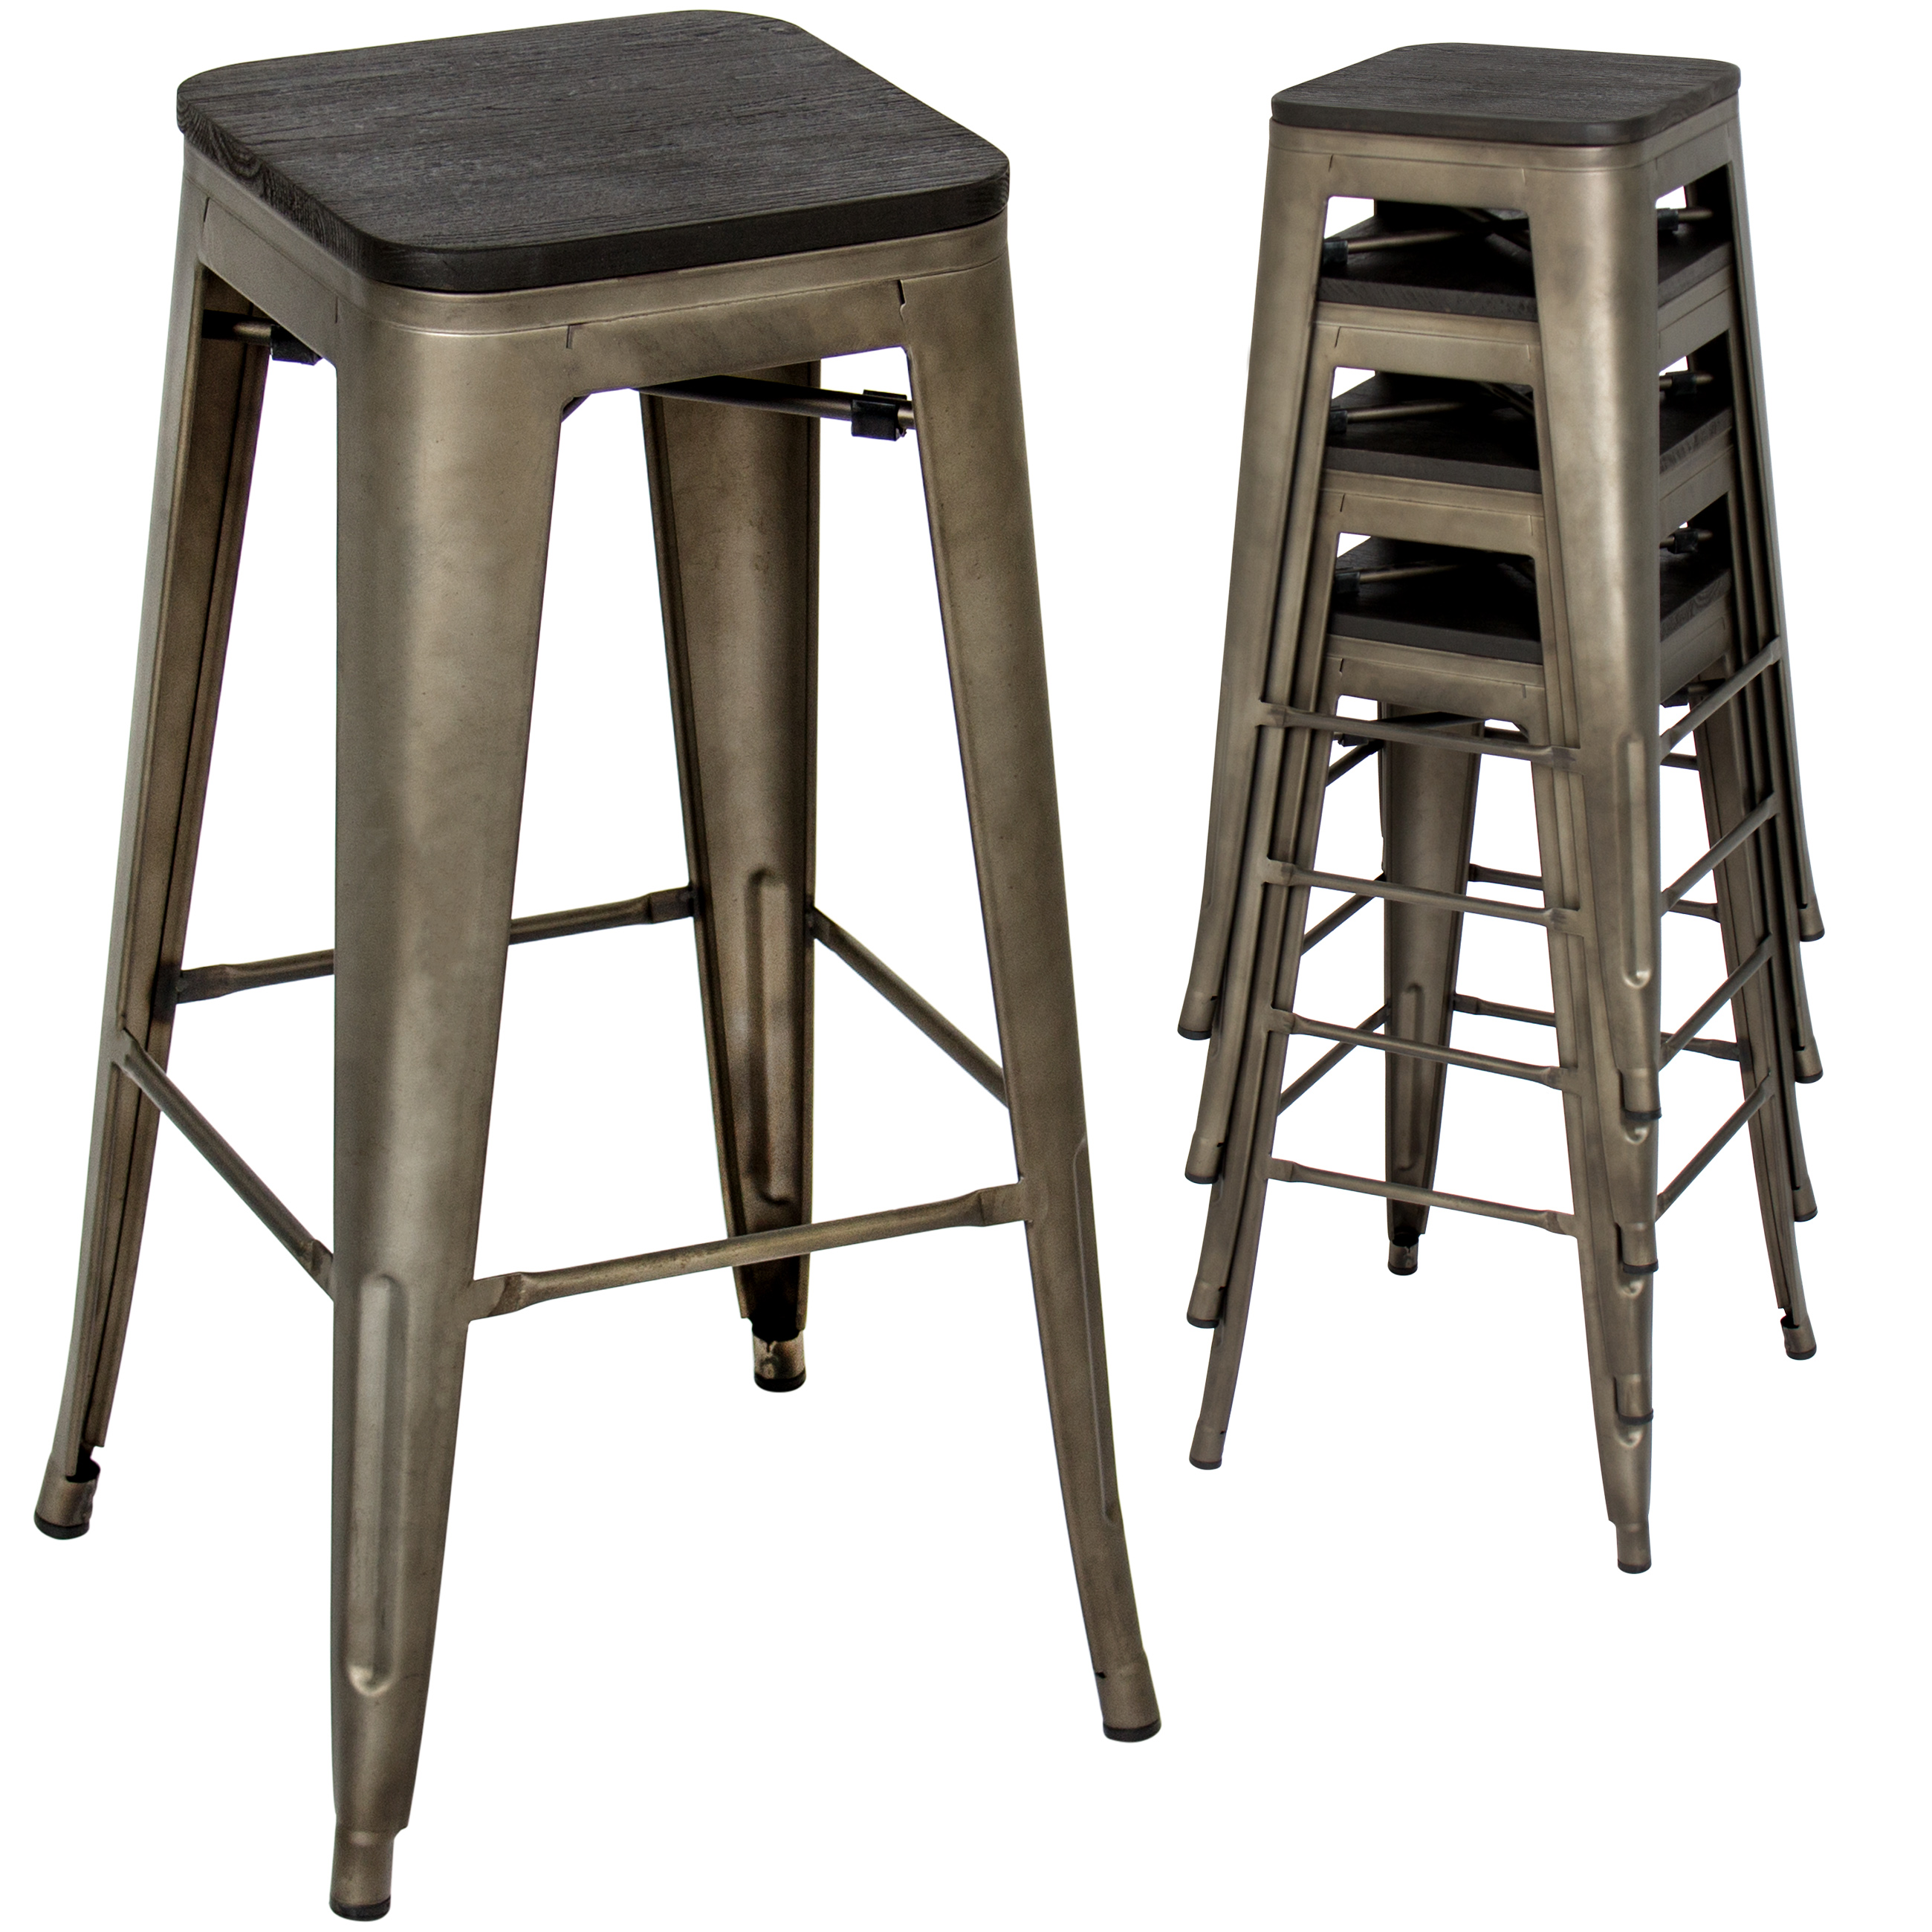 Best Choice Products 30in Set of 4 Industrial Style Distressed Stackable Metal Bar Stools w  Wood Seats Bronze Finish by Best Choice Products